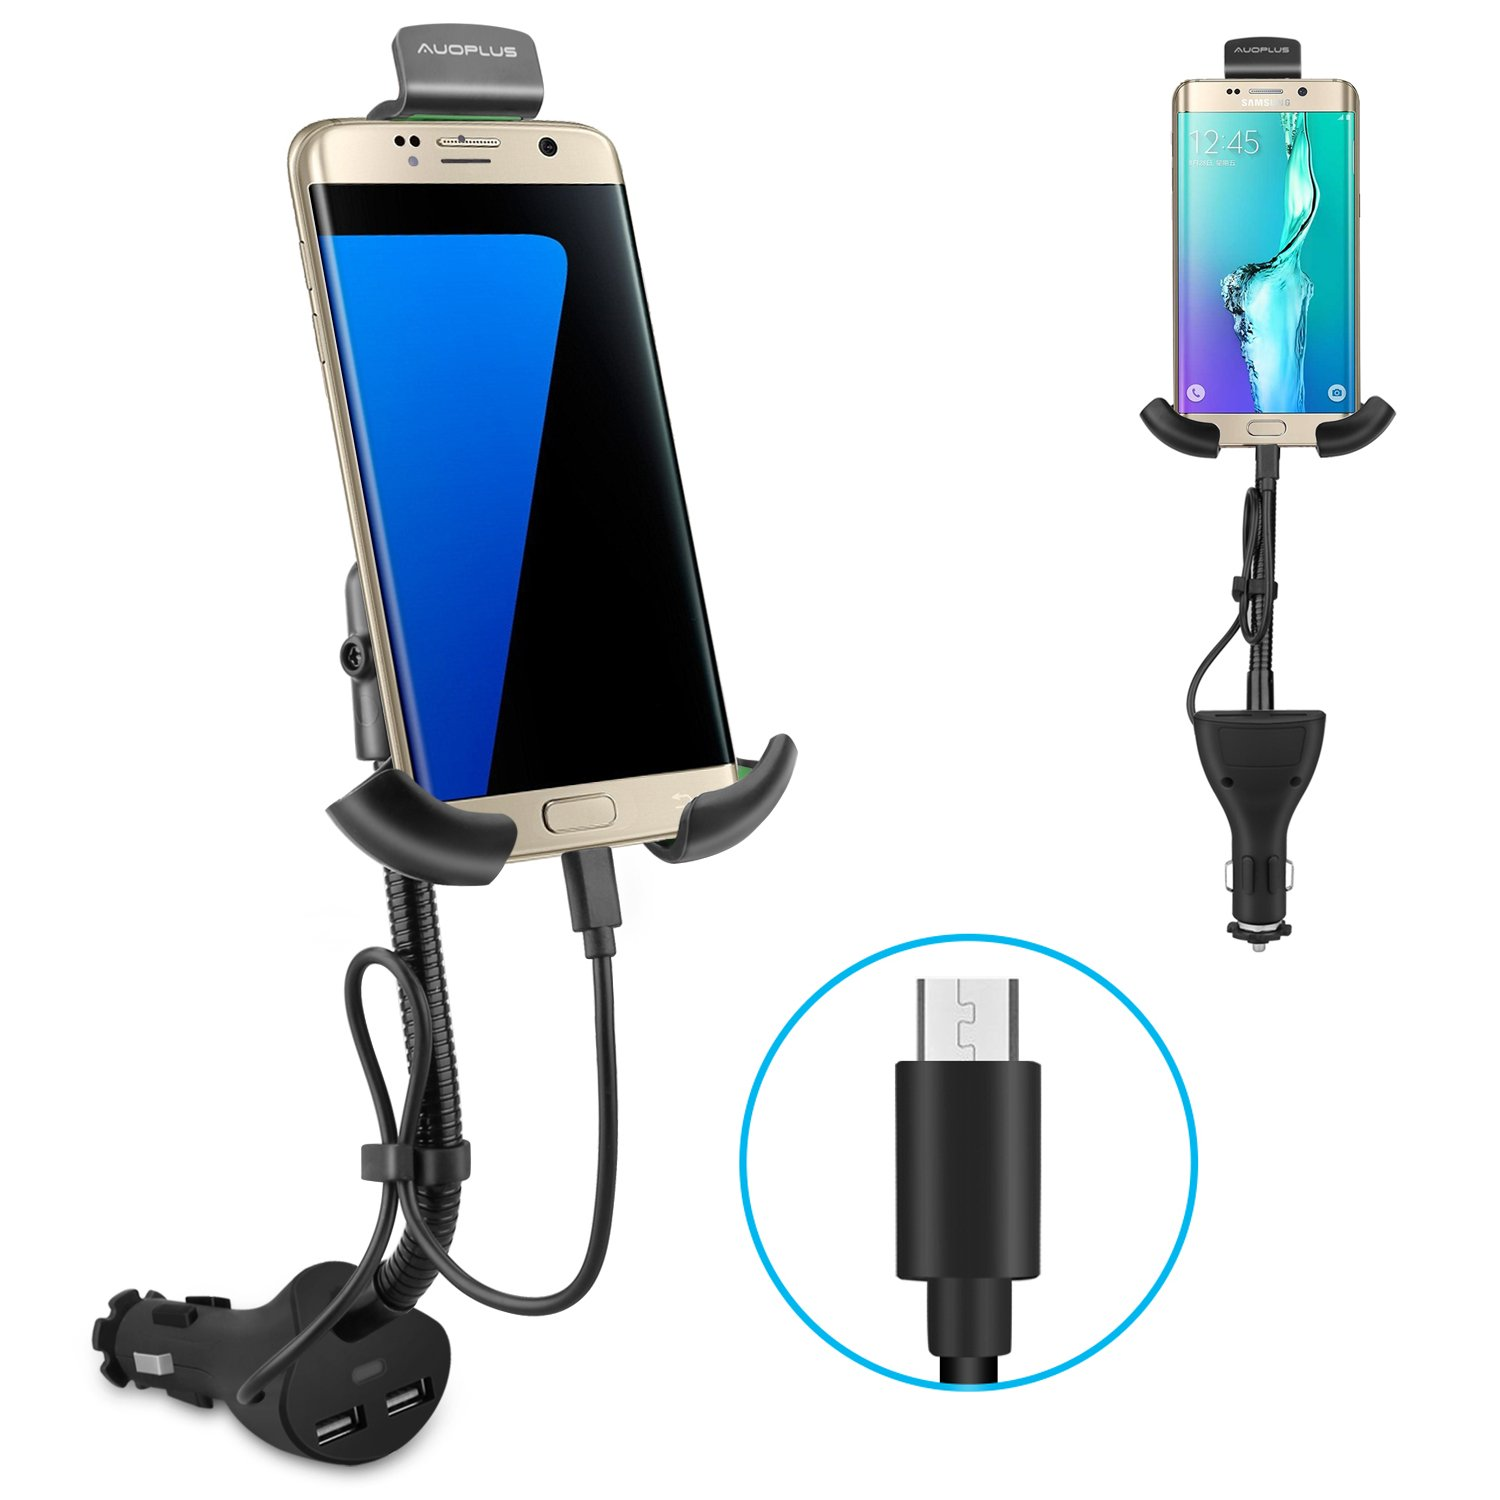 AUOPLUS Gooseneck Car Outlet Mount Cigarette Lighter Phone Holder Charger with Built-in Charging Cord for Samsung Galaxy and More Android Smartphones